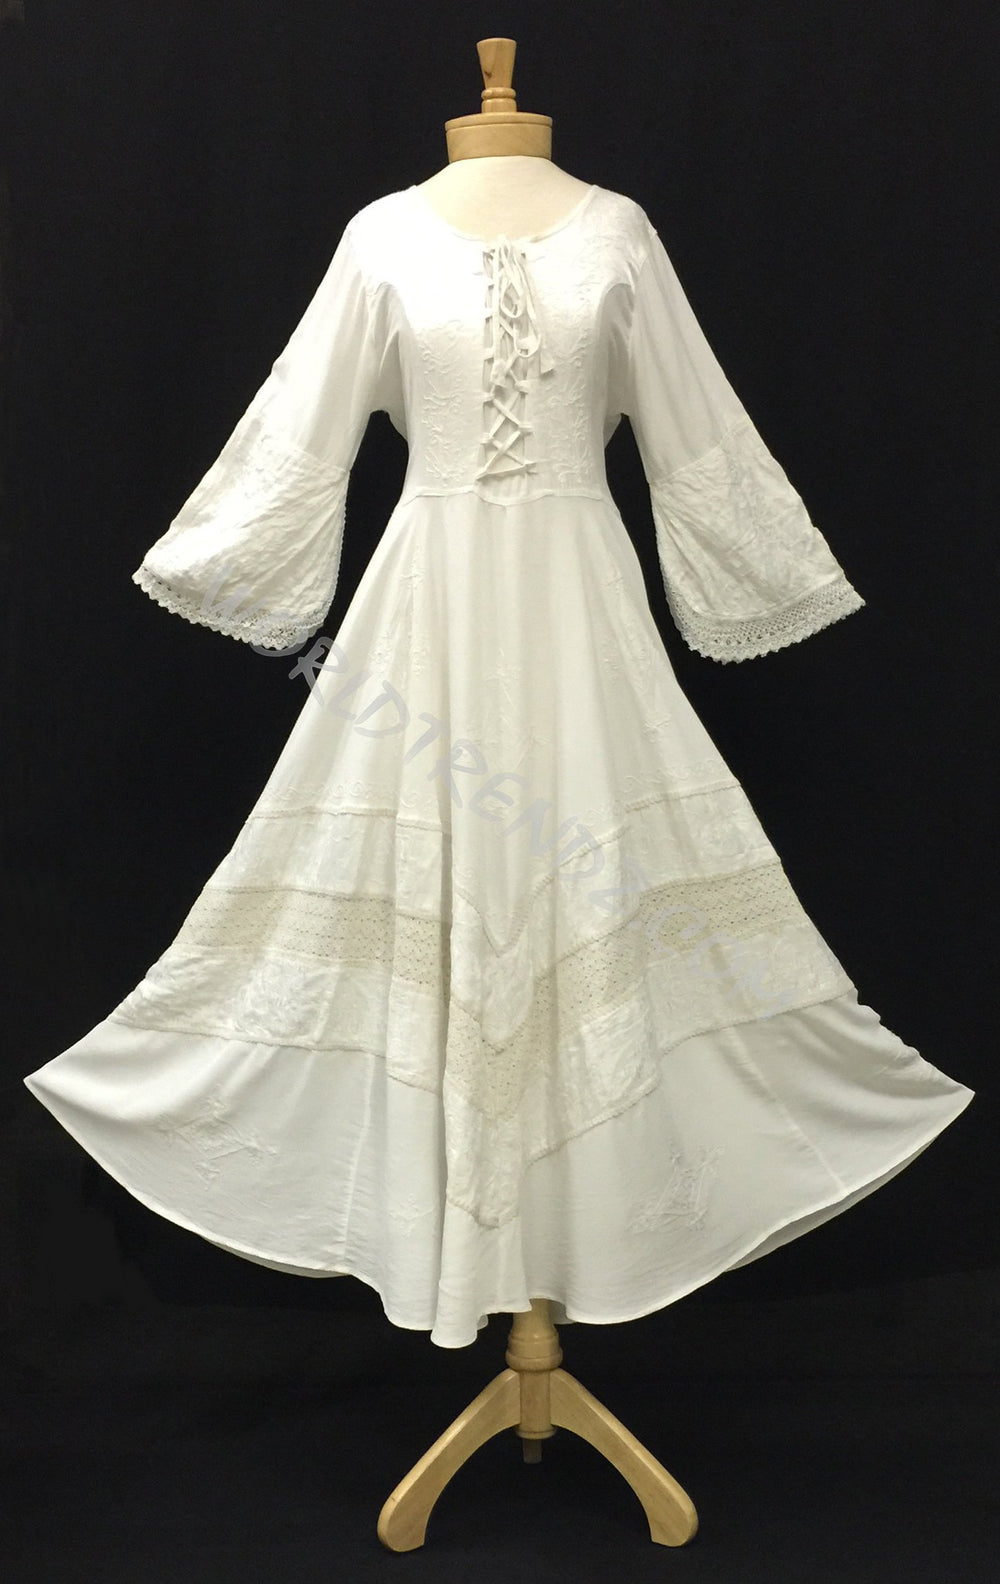 LACE-UP MEDIEVAL STYLE DRESS MAXI LENGTH WHITE FLAIR